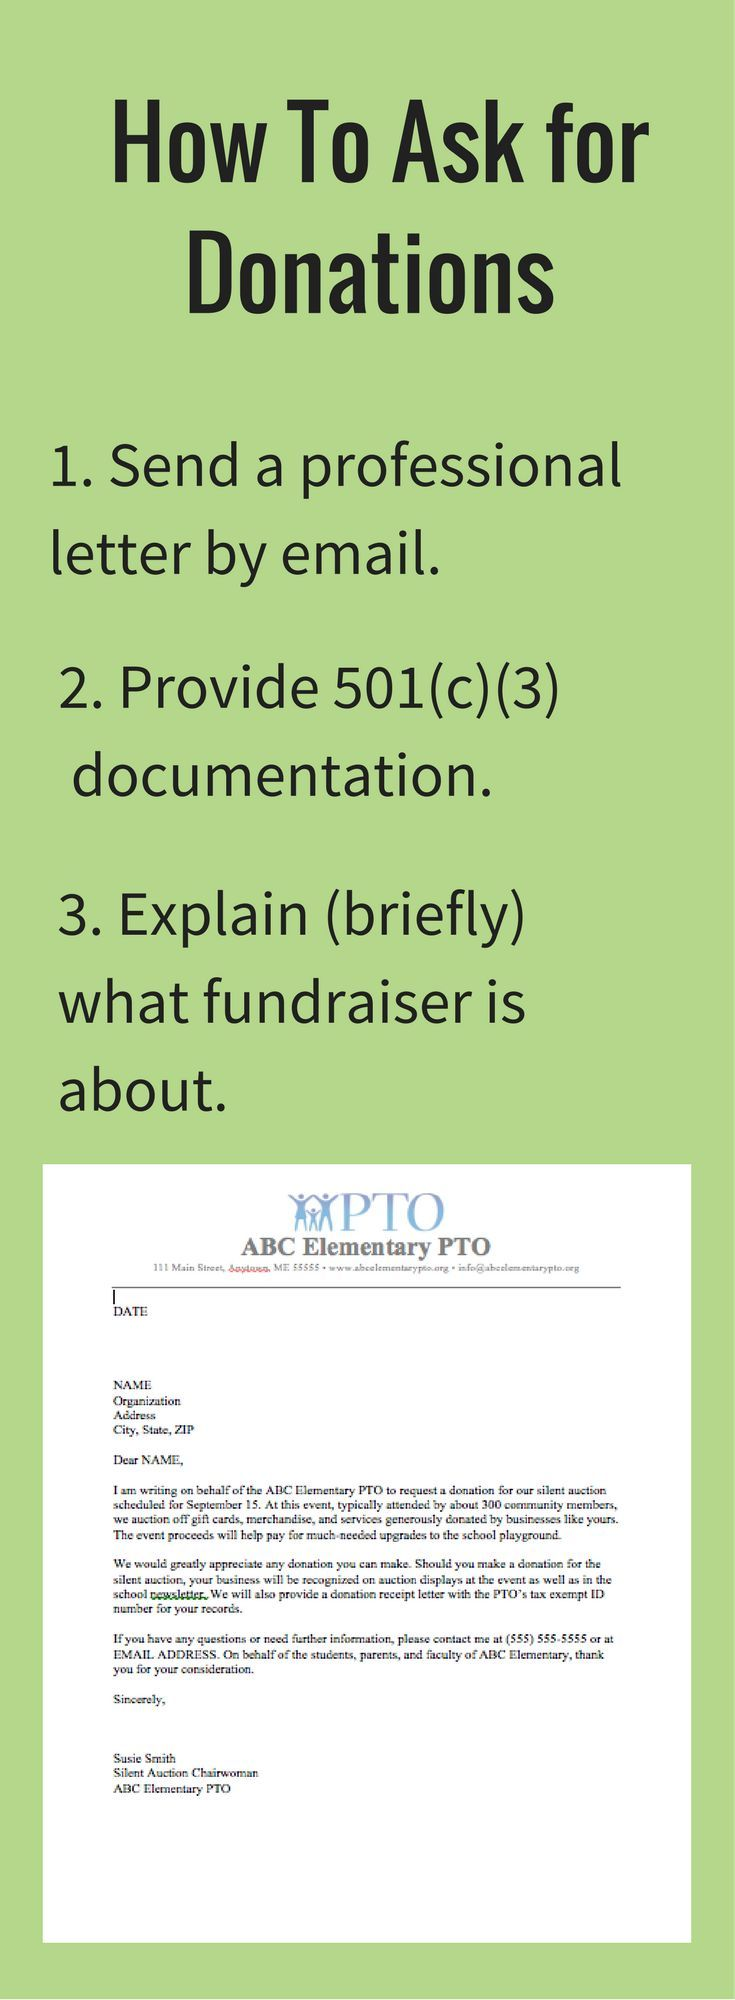 Download our free donation letter request template.